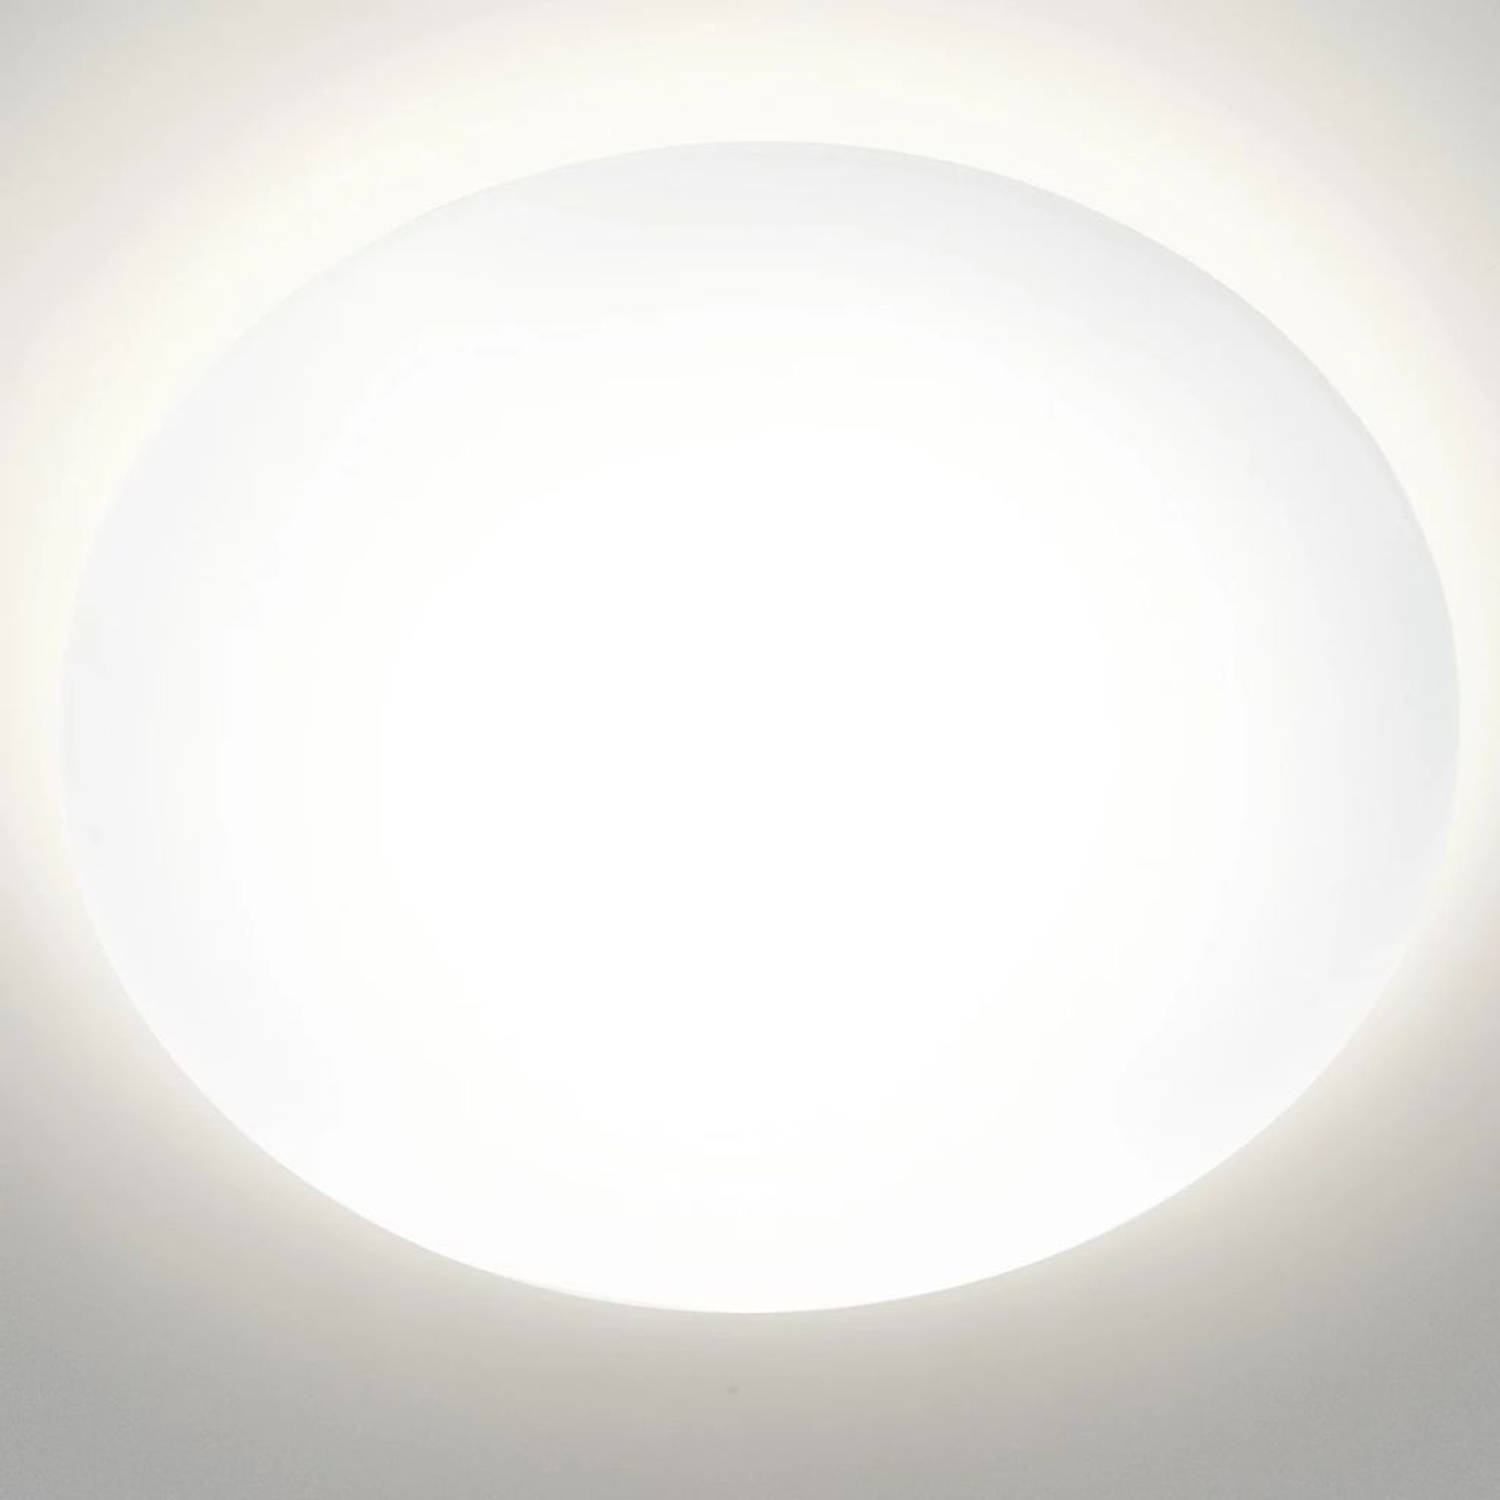 Philips Plafondlamp myLiving Suede LED 4x5 W wit 318023116